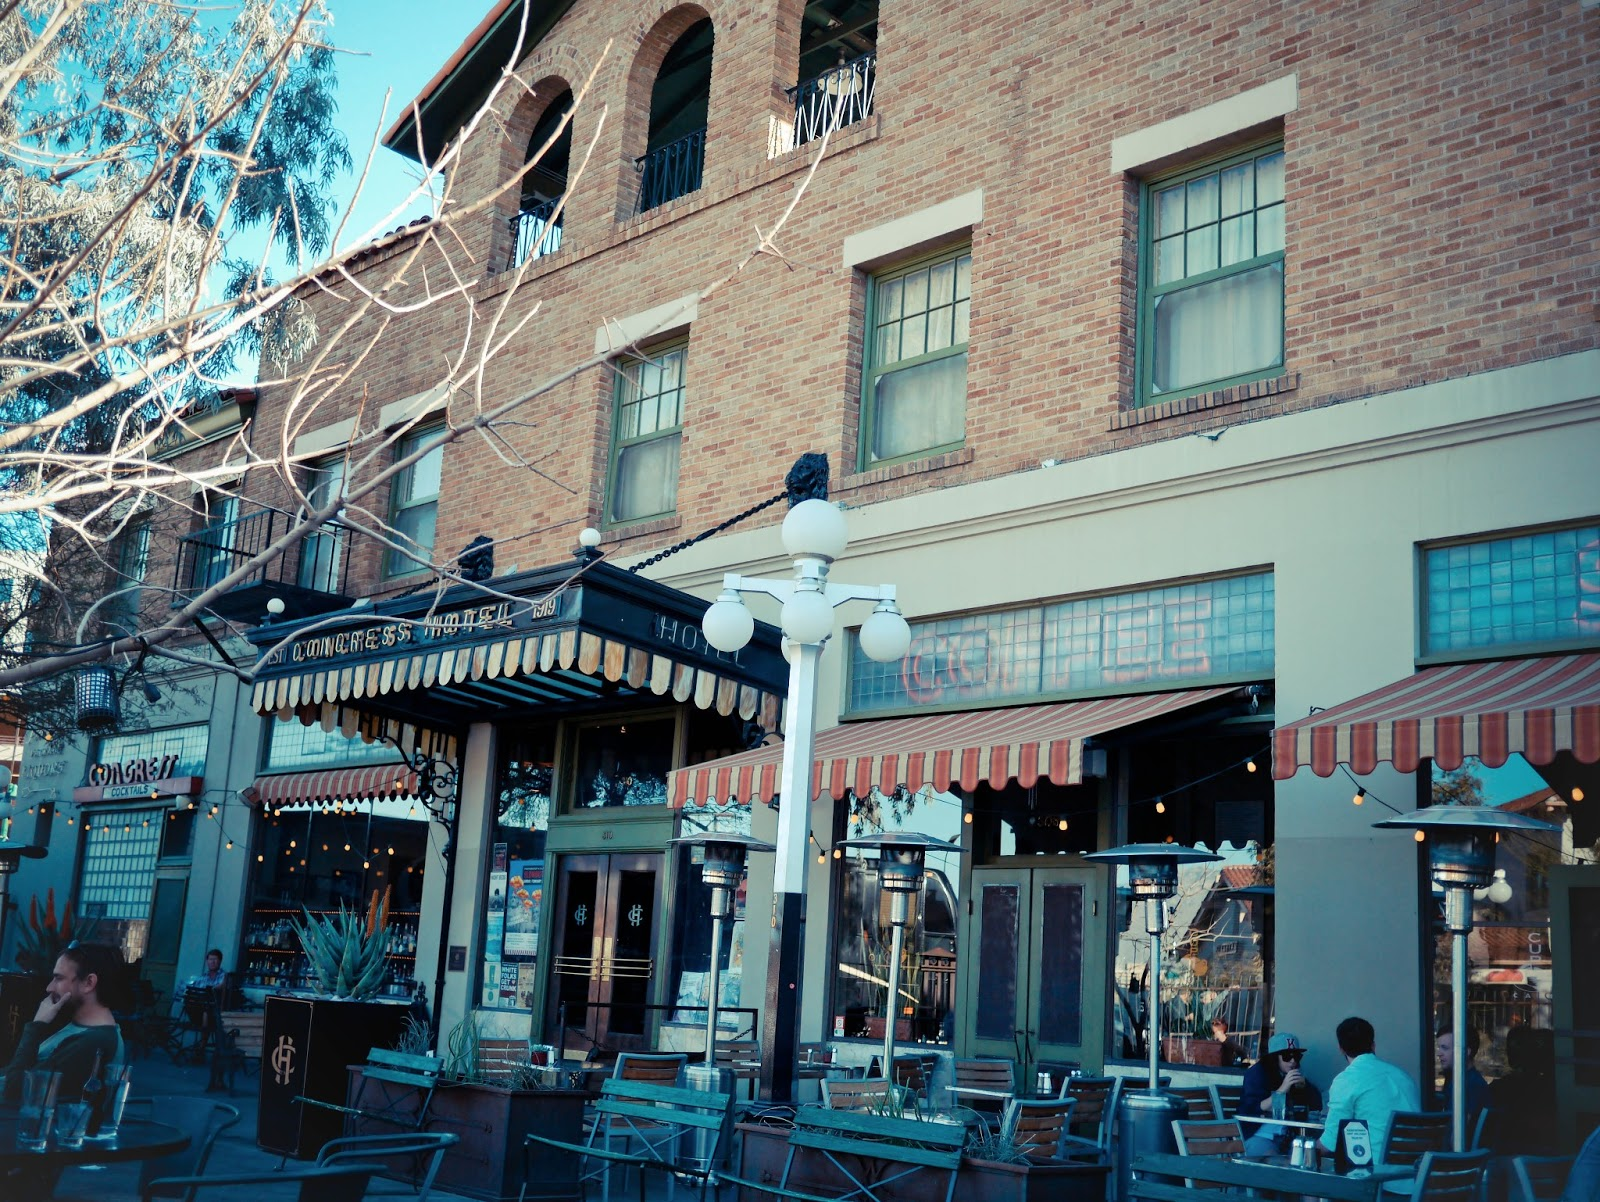 hotel congress - tucson, az - The Tale of Two TingsThe Tale of Two Tings